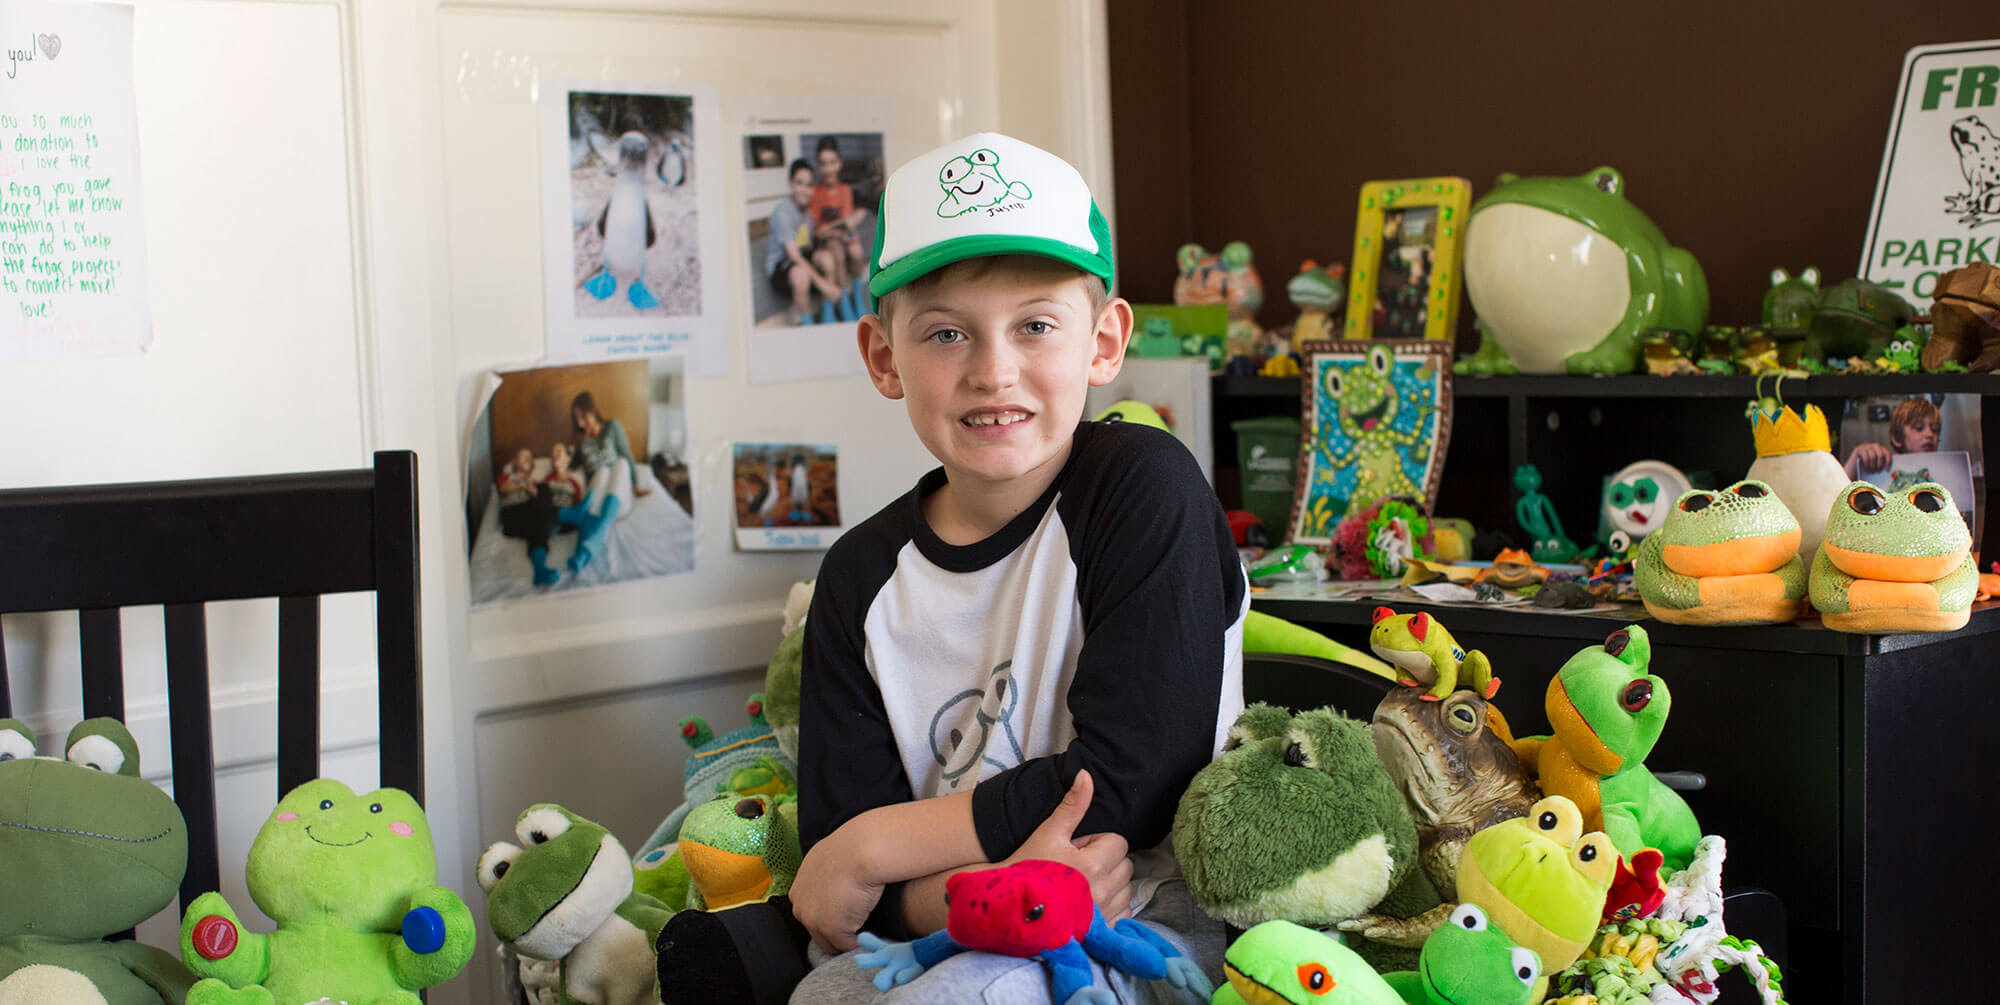 Image of a little boy sitting with stuffed animal frogs